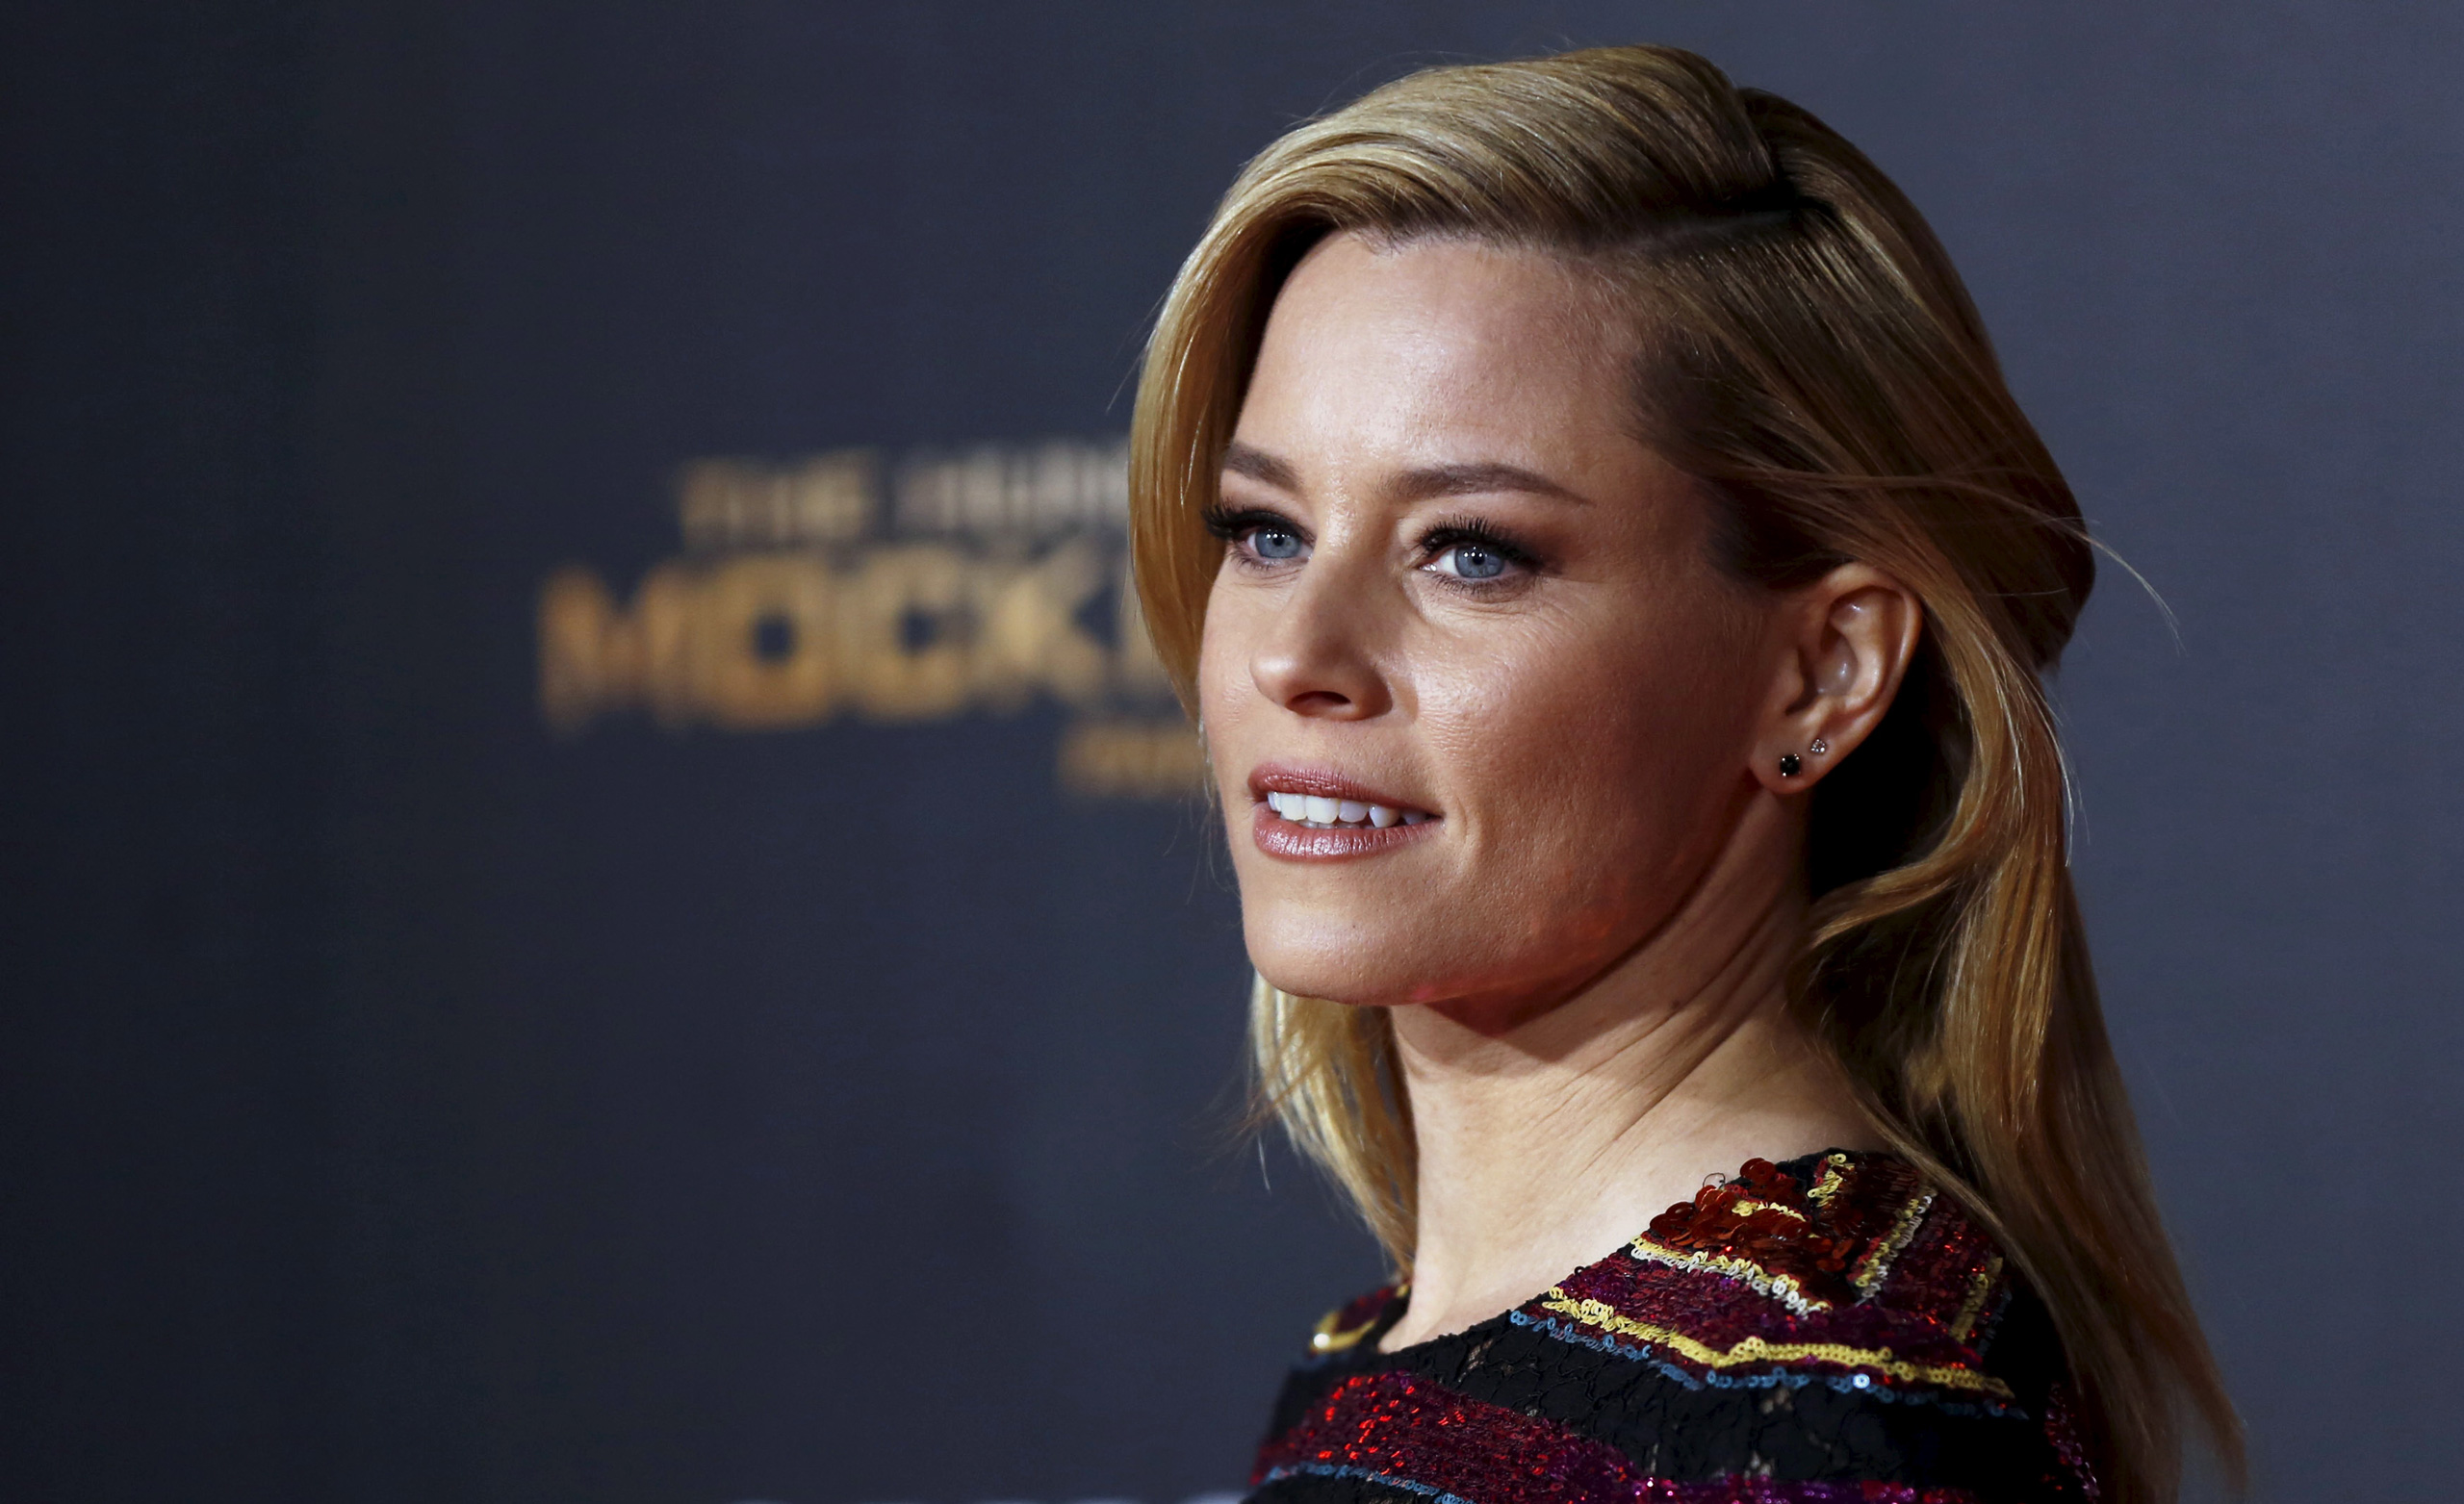 Elizabeth Banks poses at the premiere of  The Hunger Games: Mockingjay - Part 2  in Los Angeles on Nov. 16, 2015.